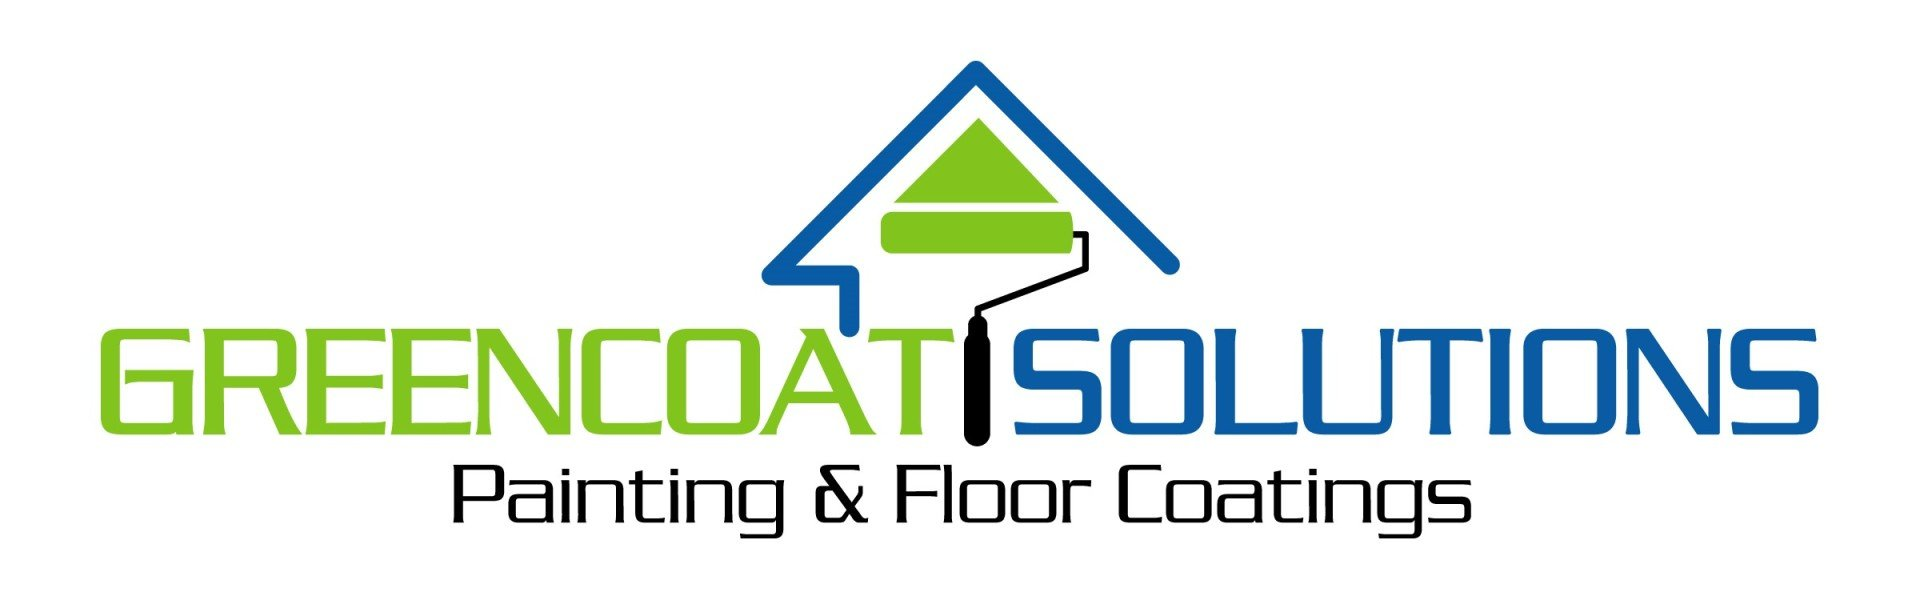 GREENCOAT SOLUTIONS Logo